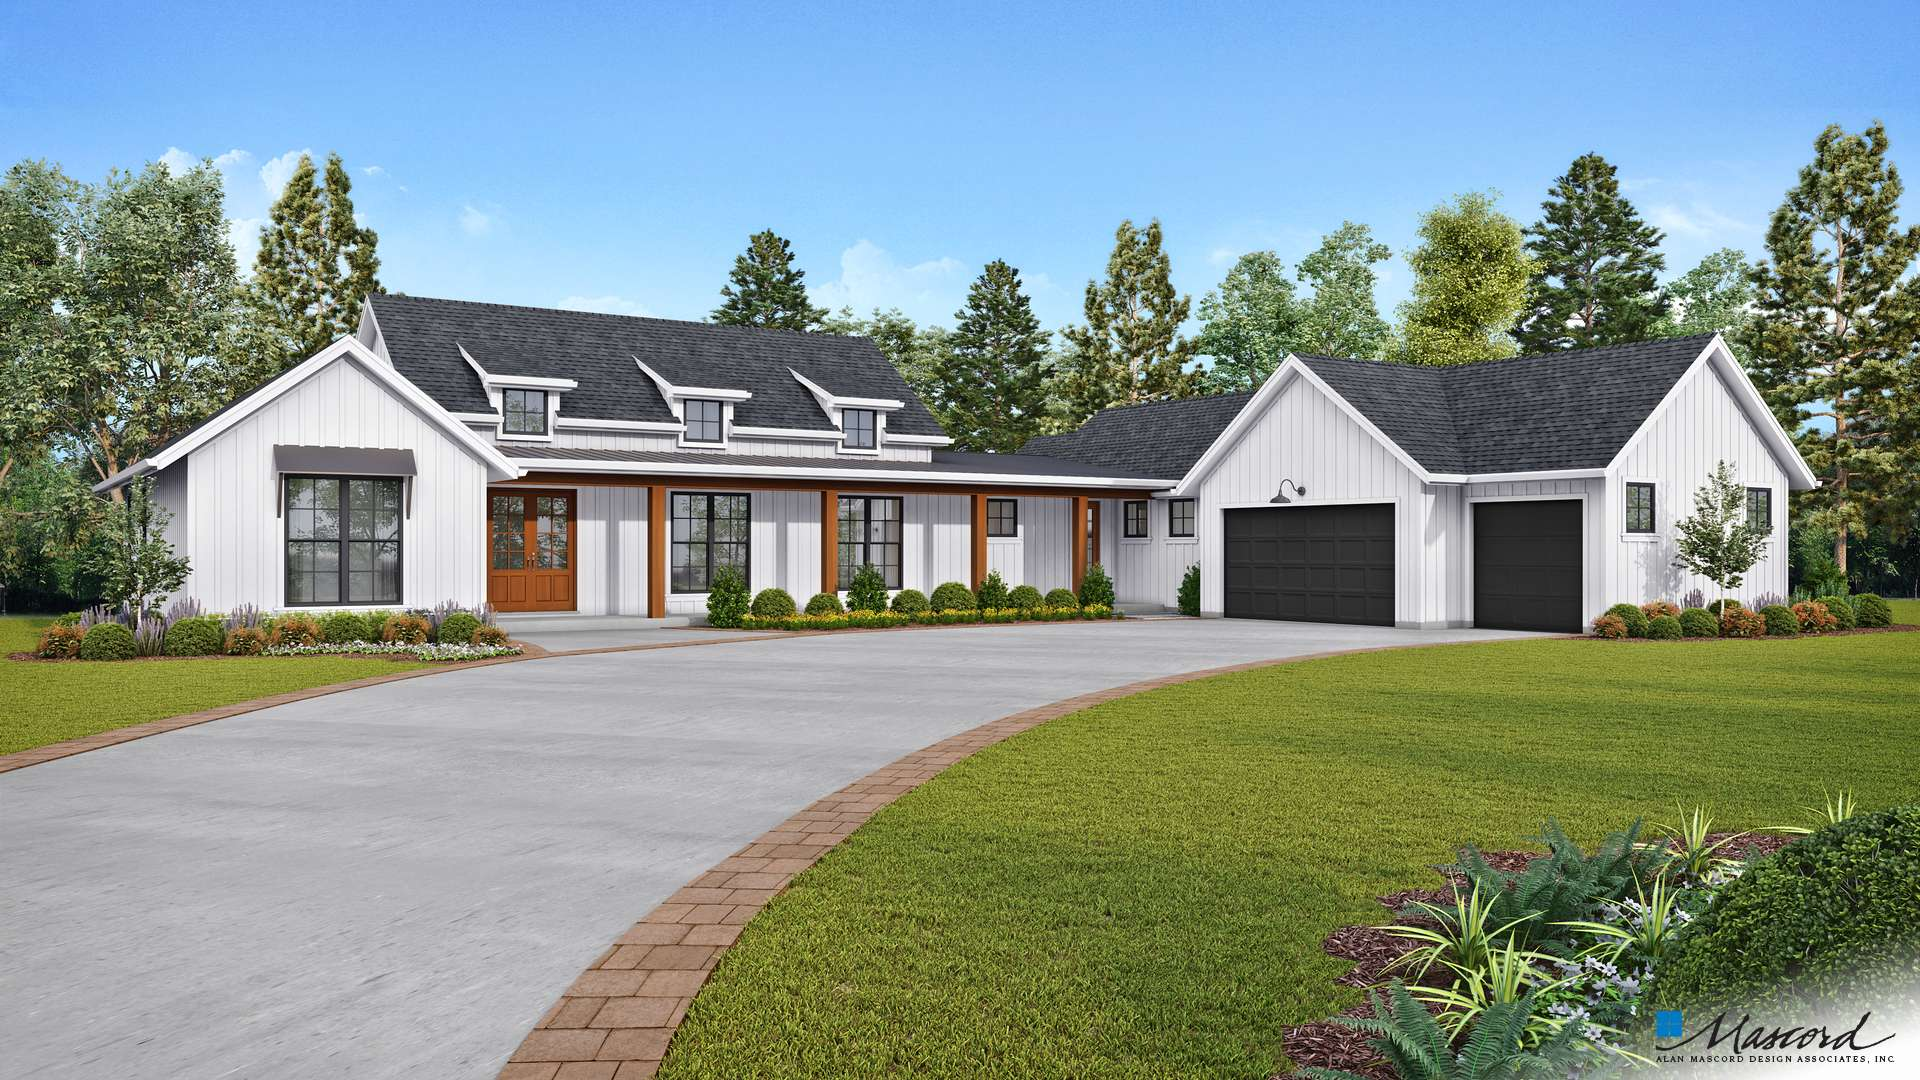 Contemporary House Plan 1259 The Bernadino: 2495 Sqft, 3 Beds, 2.1 on 1920s small houses, 1920s art, 1920s flooring, 1920s magazines, 1920s wisconsin farmhouse front porch, 1920s schoolhouse, 1920s building, small historic home plans, 1920s cleaning, 1920s fireplace mantel, 1920s design, 1920s furniture, 1920s business, 1920s education, 1920s farmhouse living room, 1920s photography, 1920s travel, 1920s new york luxury apartments, 1920s windows, 1920s architecture,